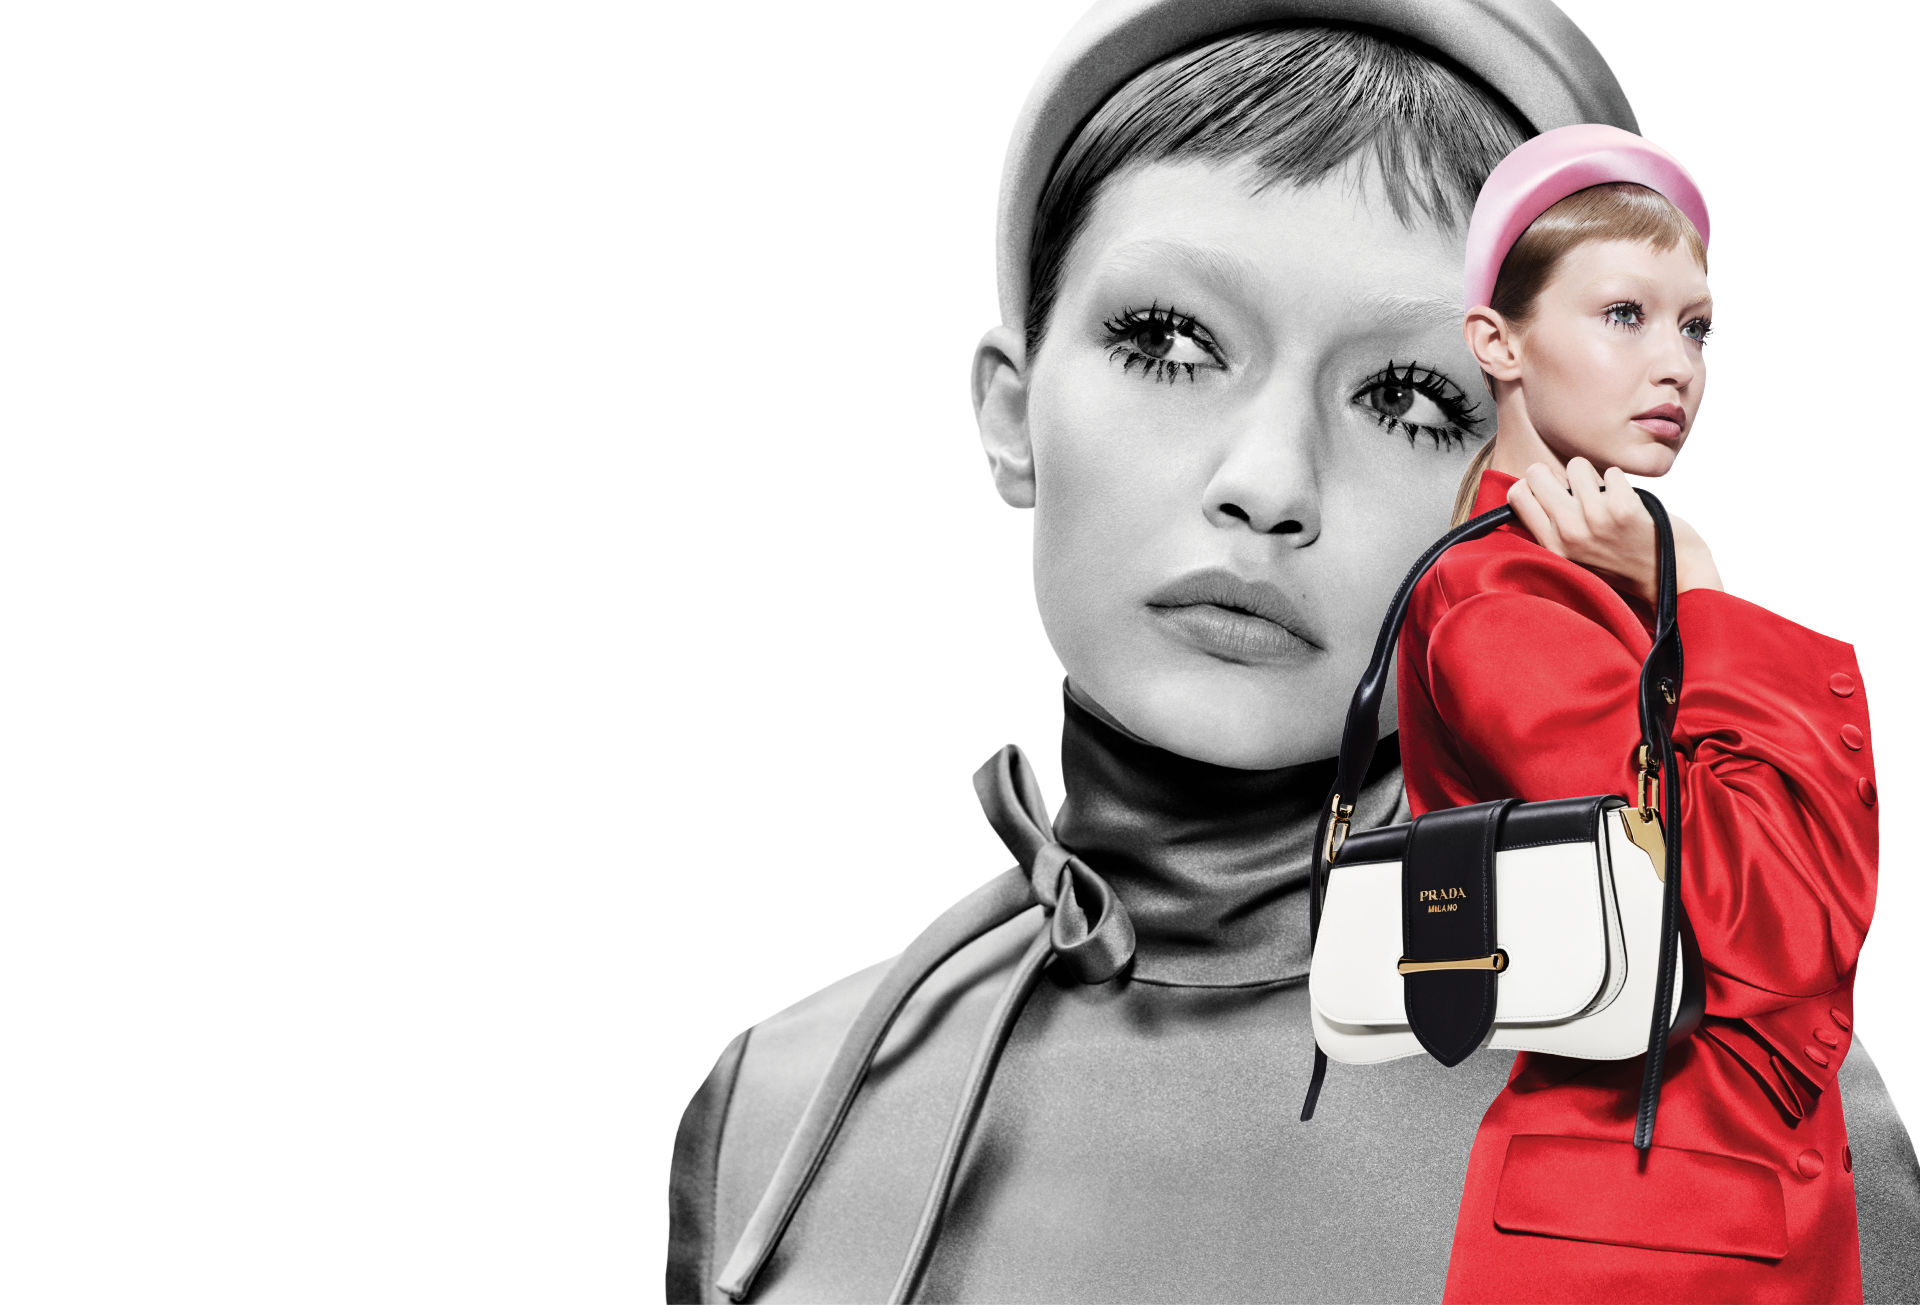 prada-spring-2019-ad-campaign-the-impression